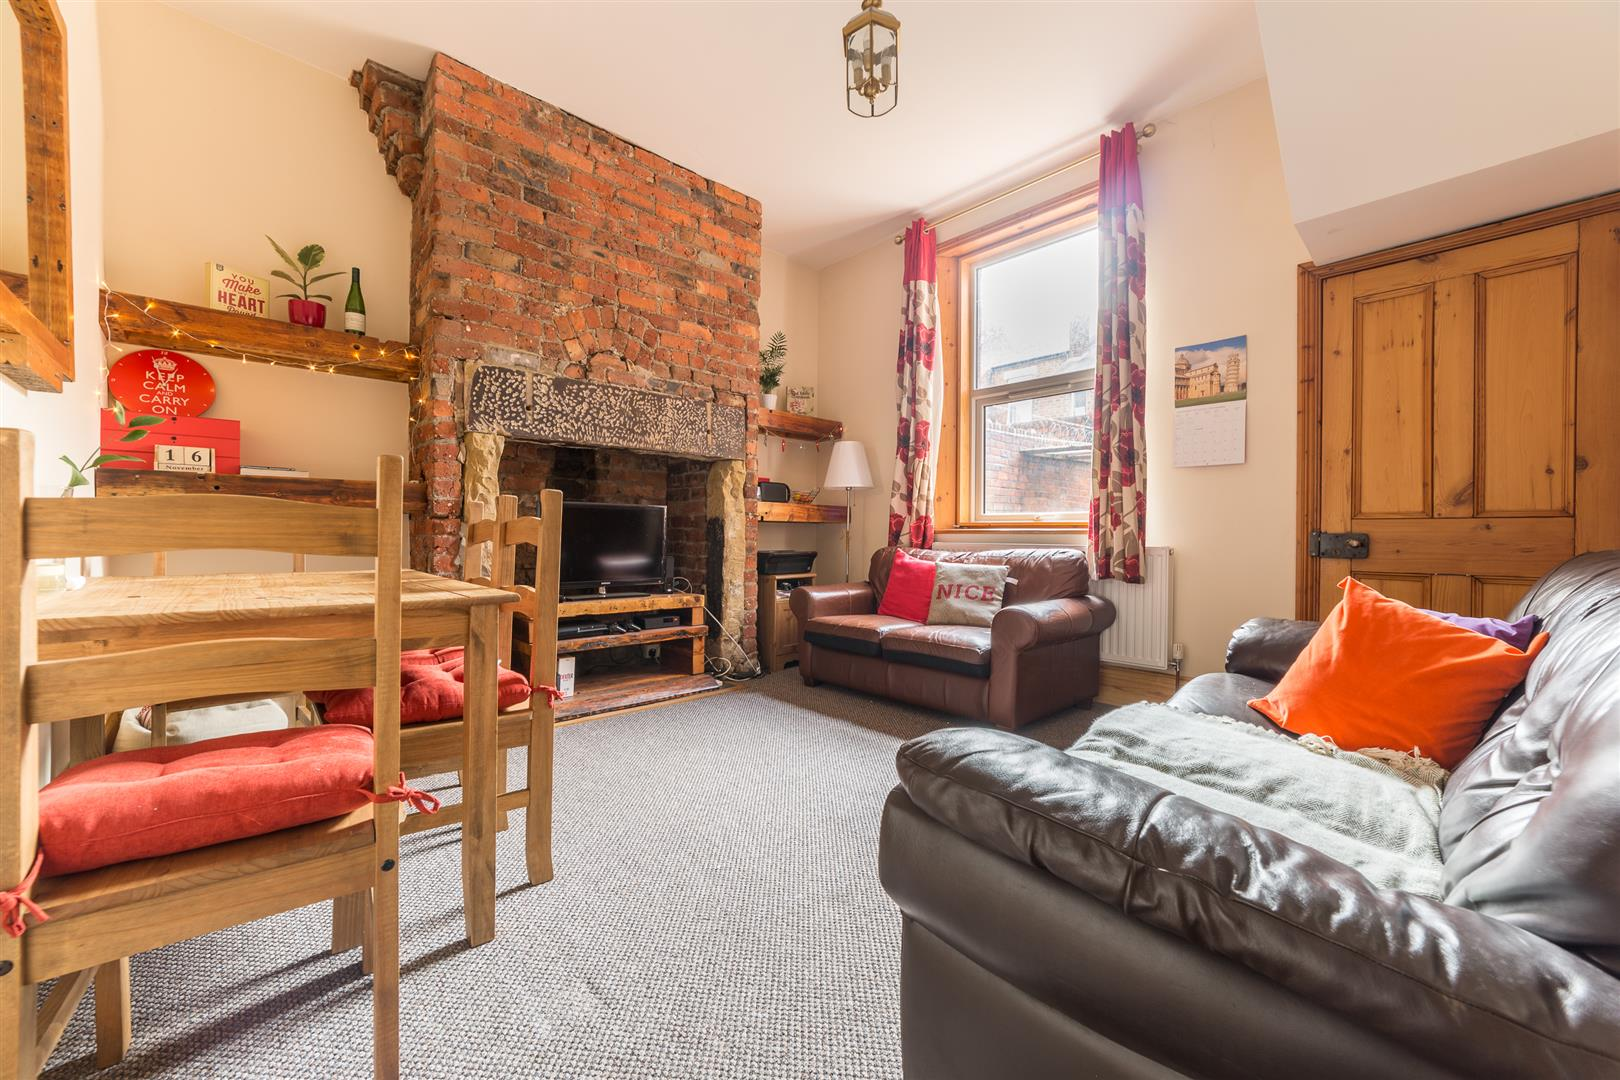 3 bed terraced house to rent in Newcastle Upon Tyne, NE4 5AE  - Property Image 1